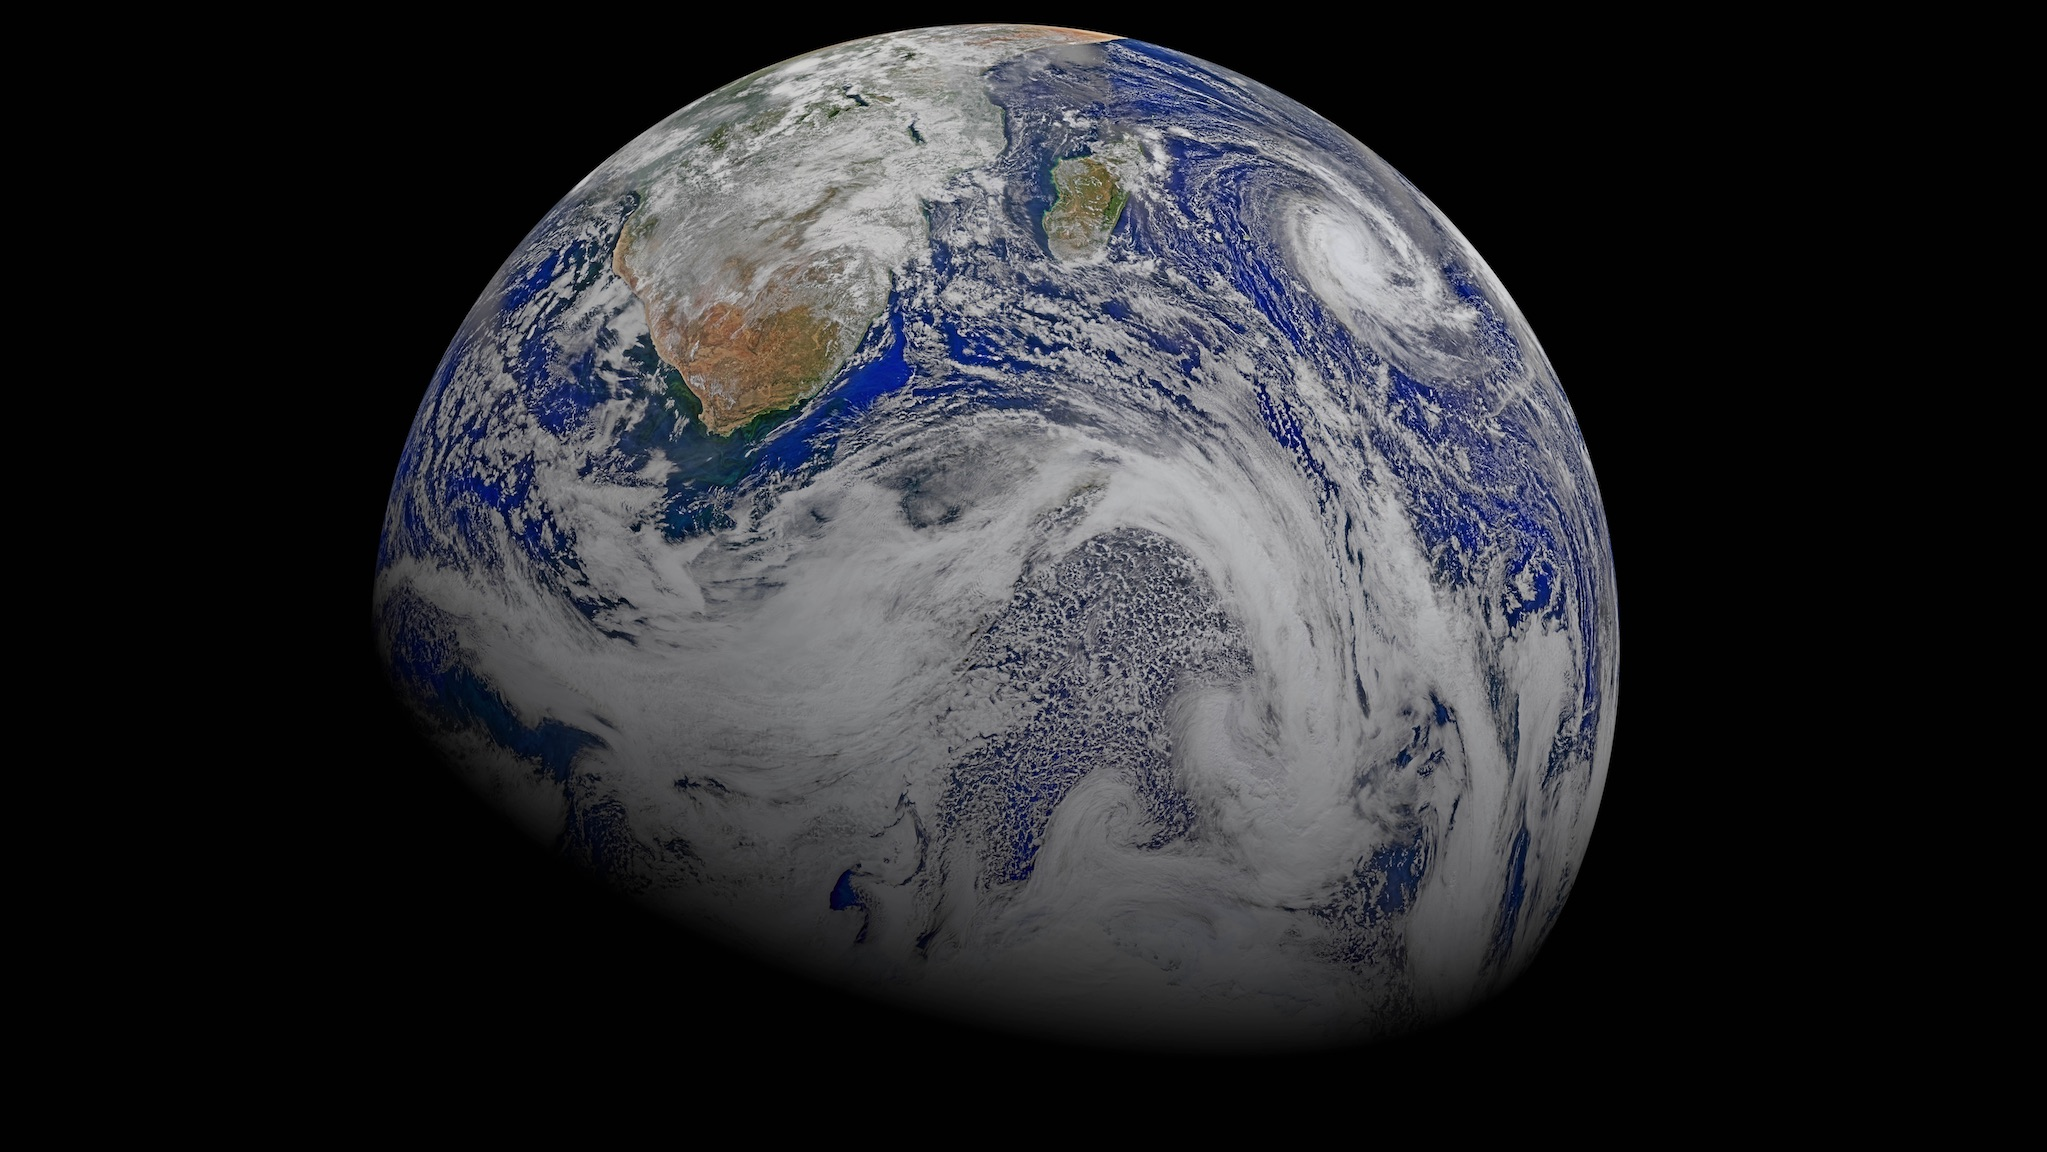 planet-earth-cropped.jpg